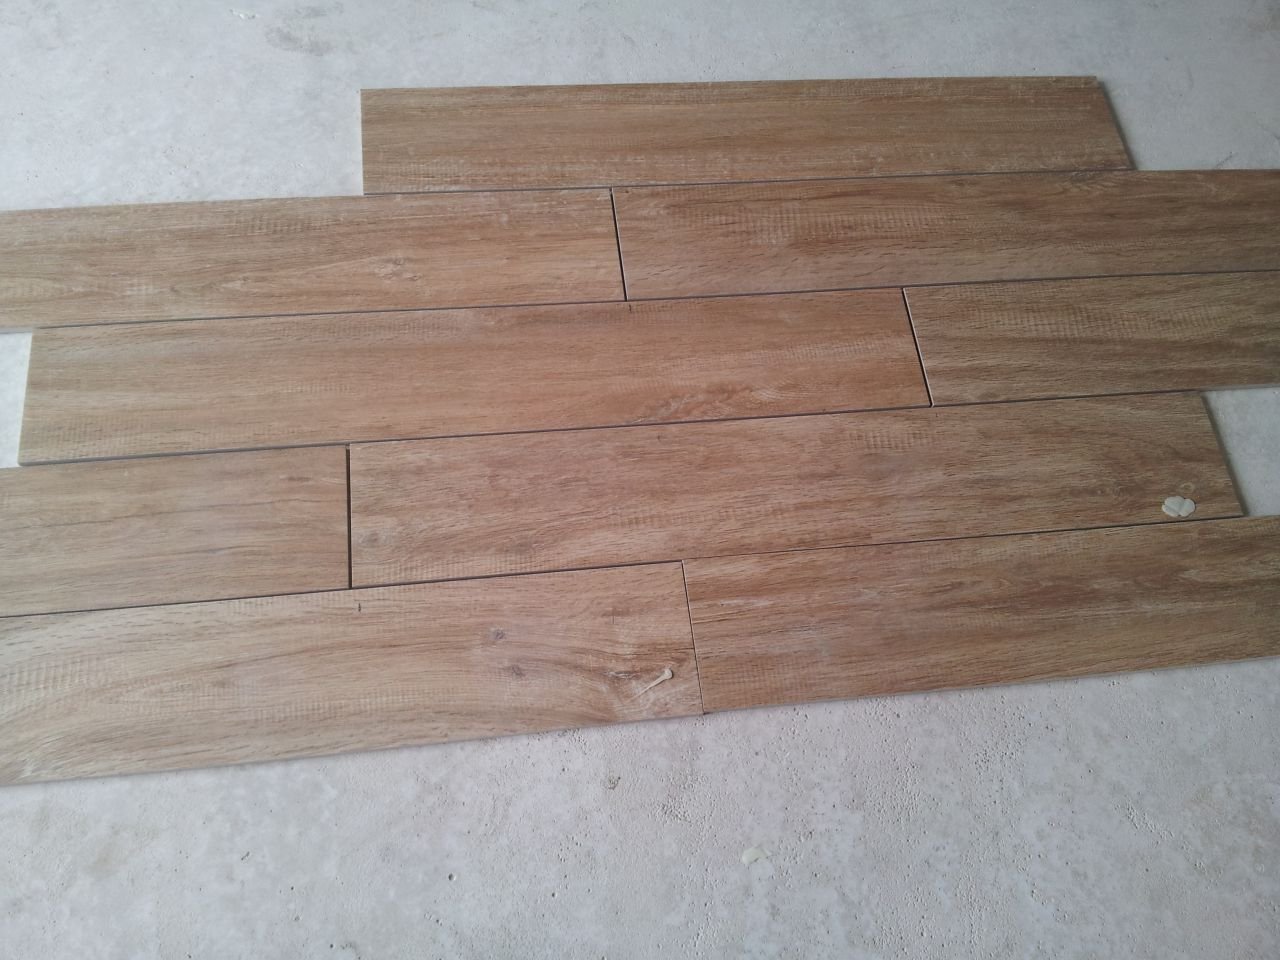 Sens et technique de pose pr carrelage imitation parquet for Pose de joint carrelage